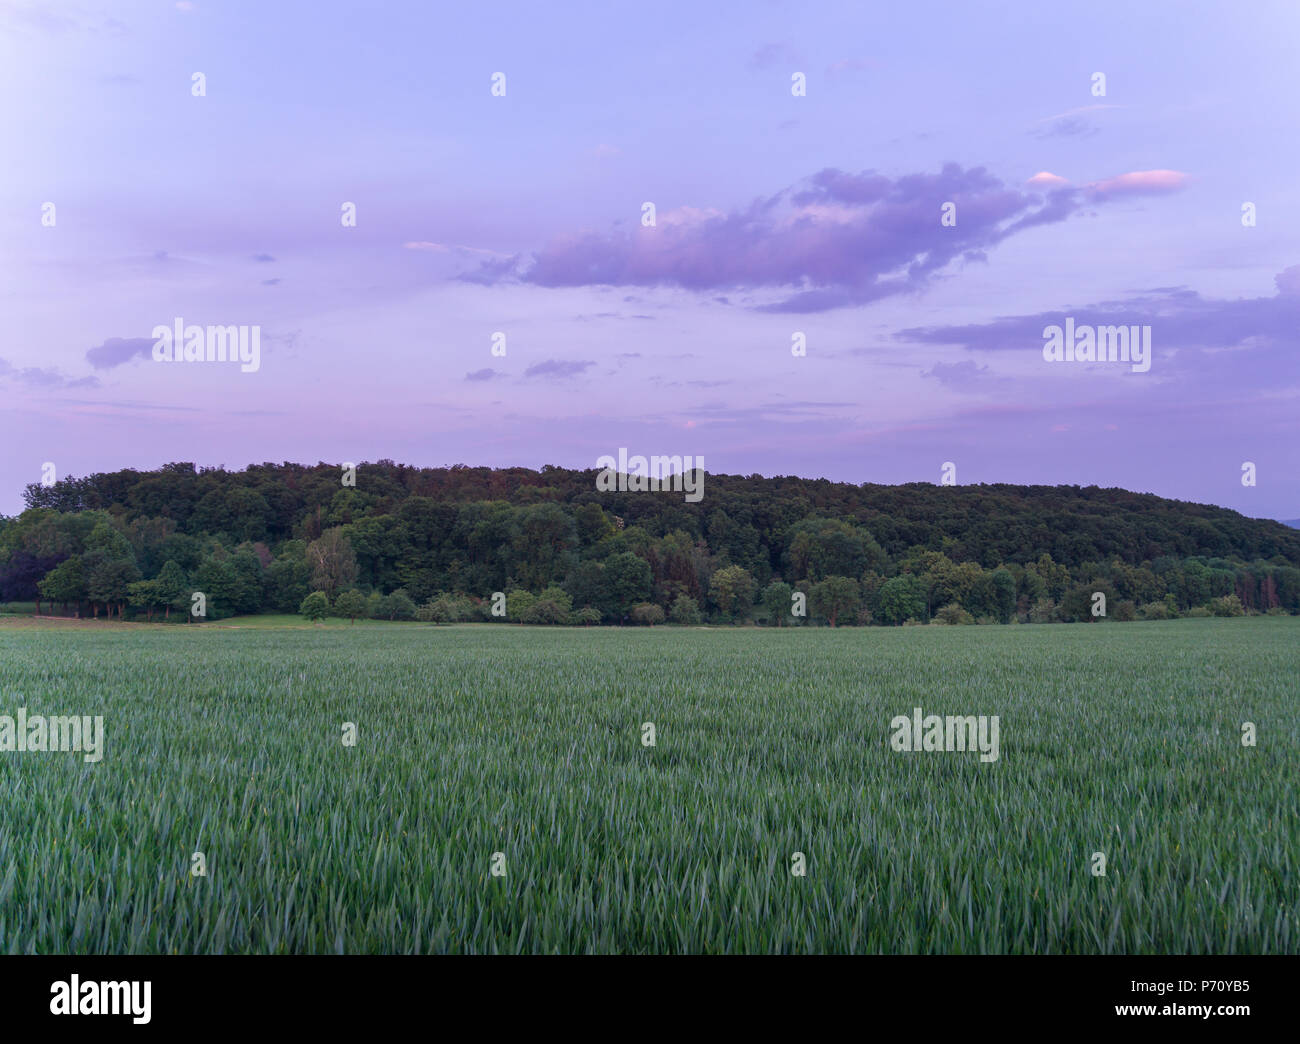 Germany, Colorful forest behind green fields at dawning - Stock Image